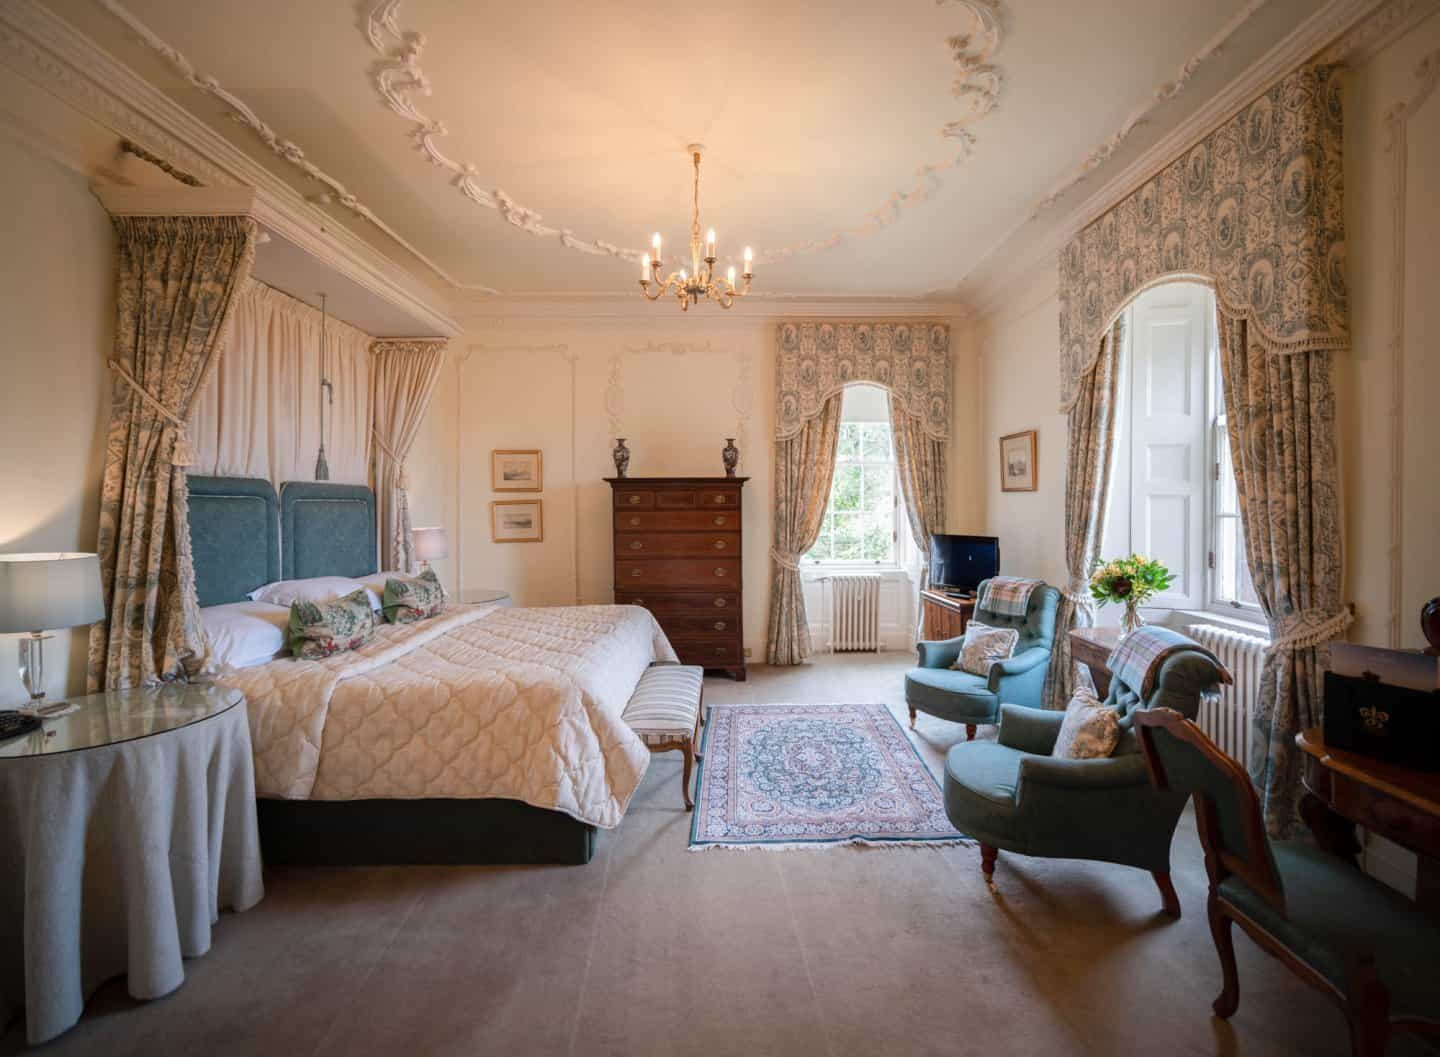 The Countess of Inchcape sea view bedroom at Glenapp Castle